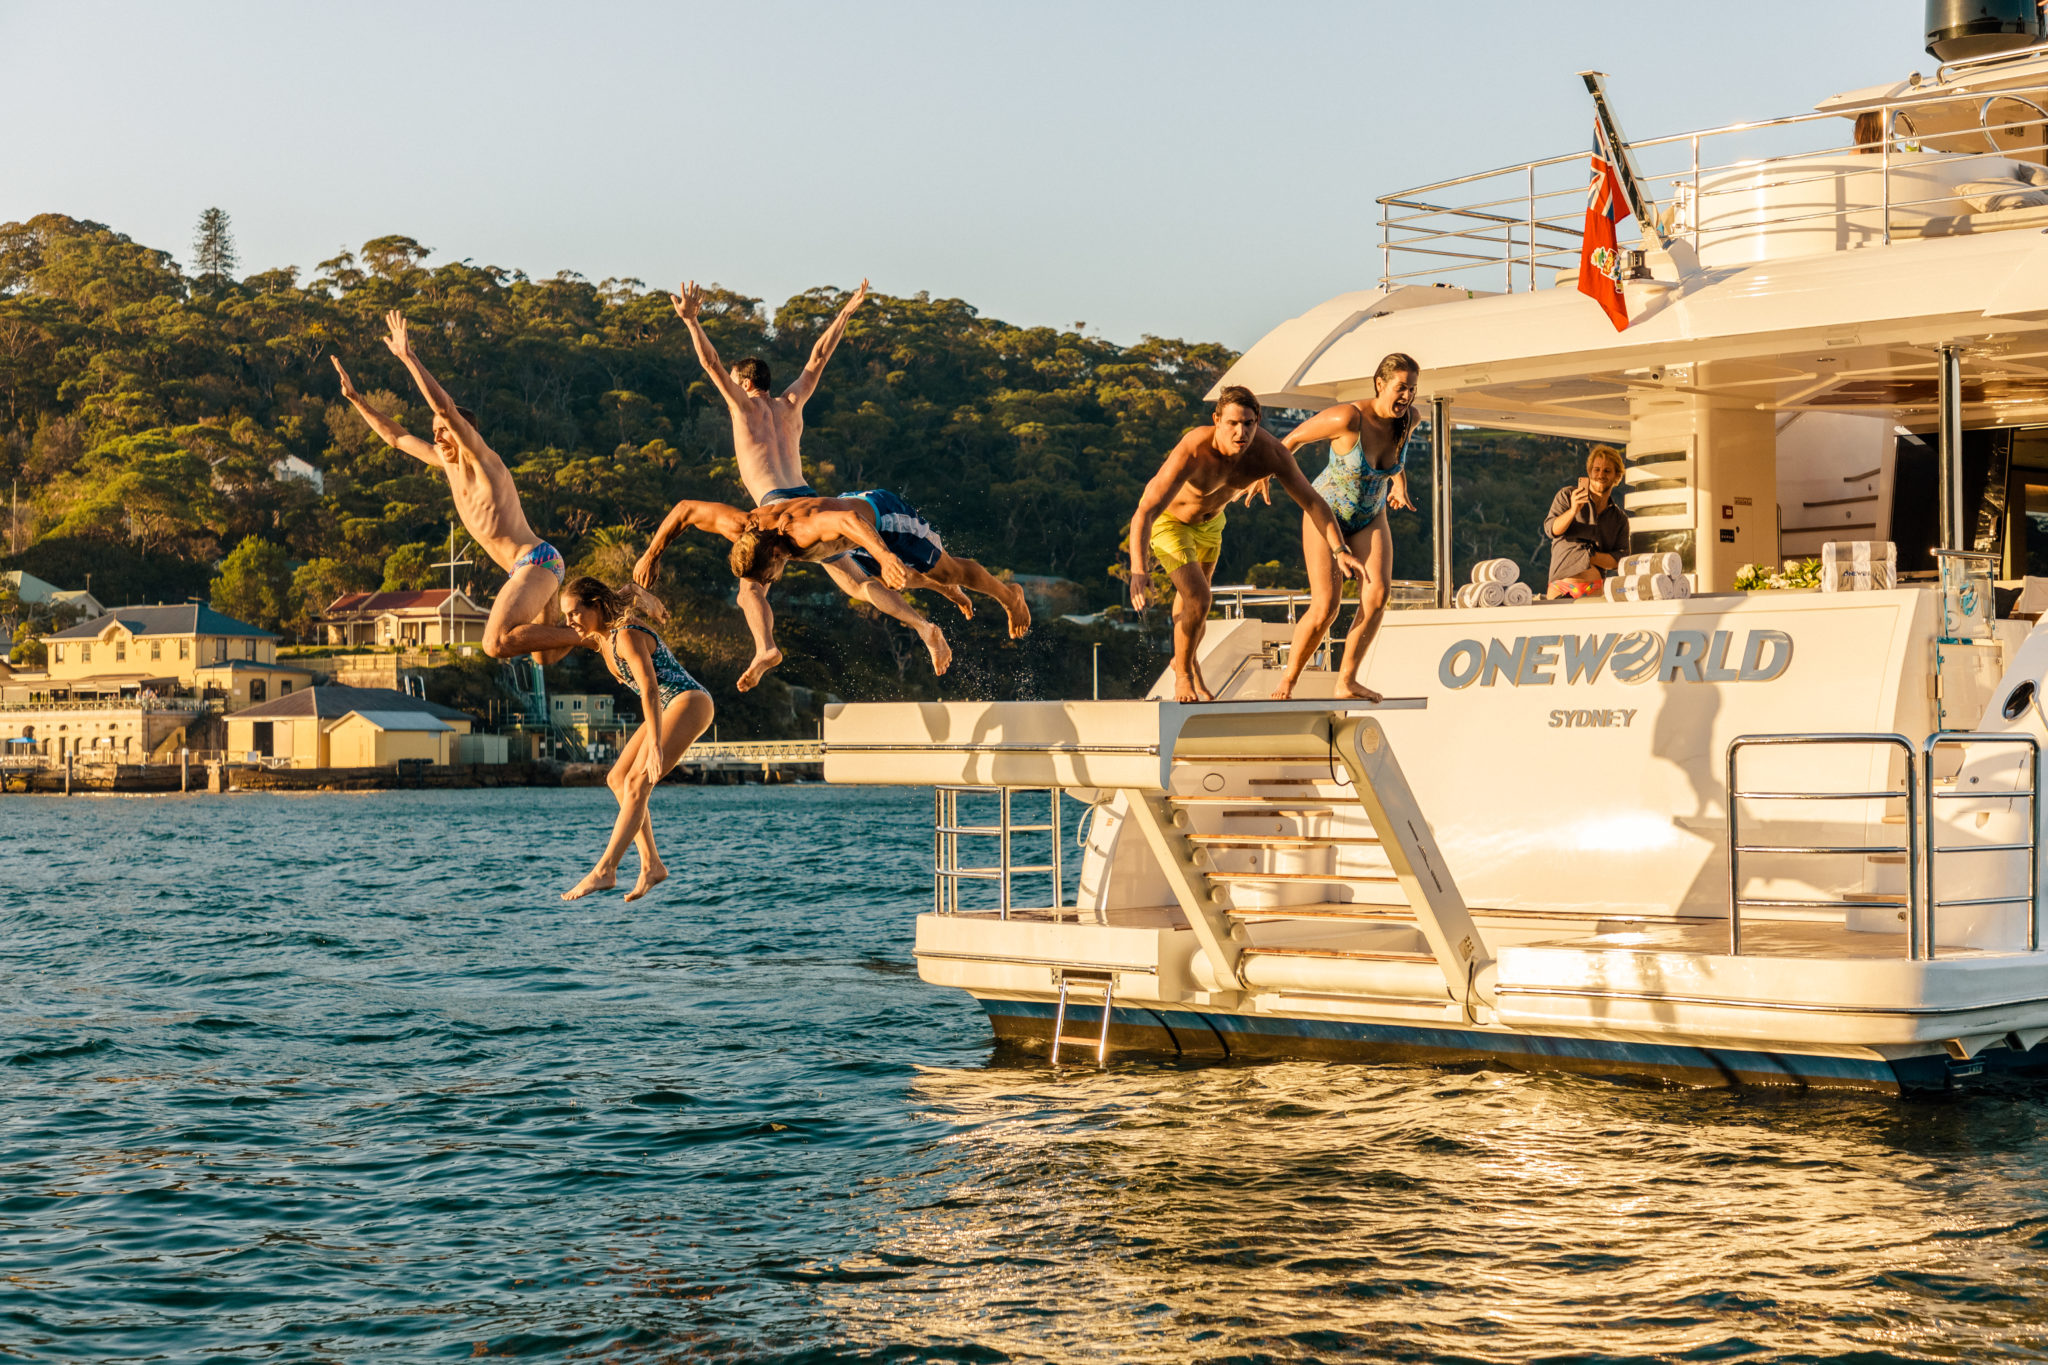 Oneworld Harbour Charters